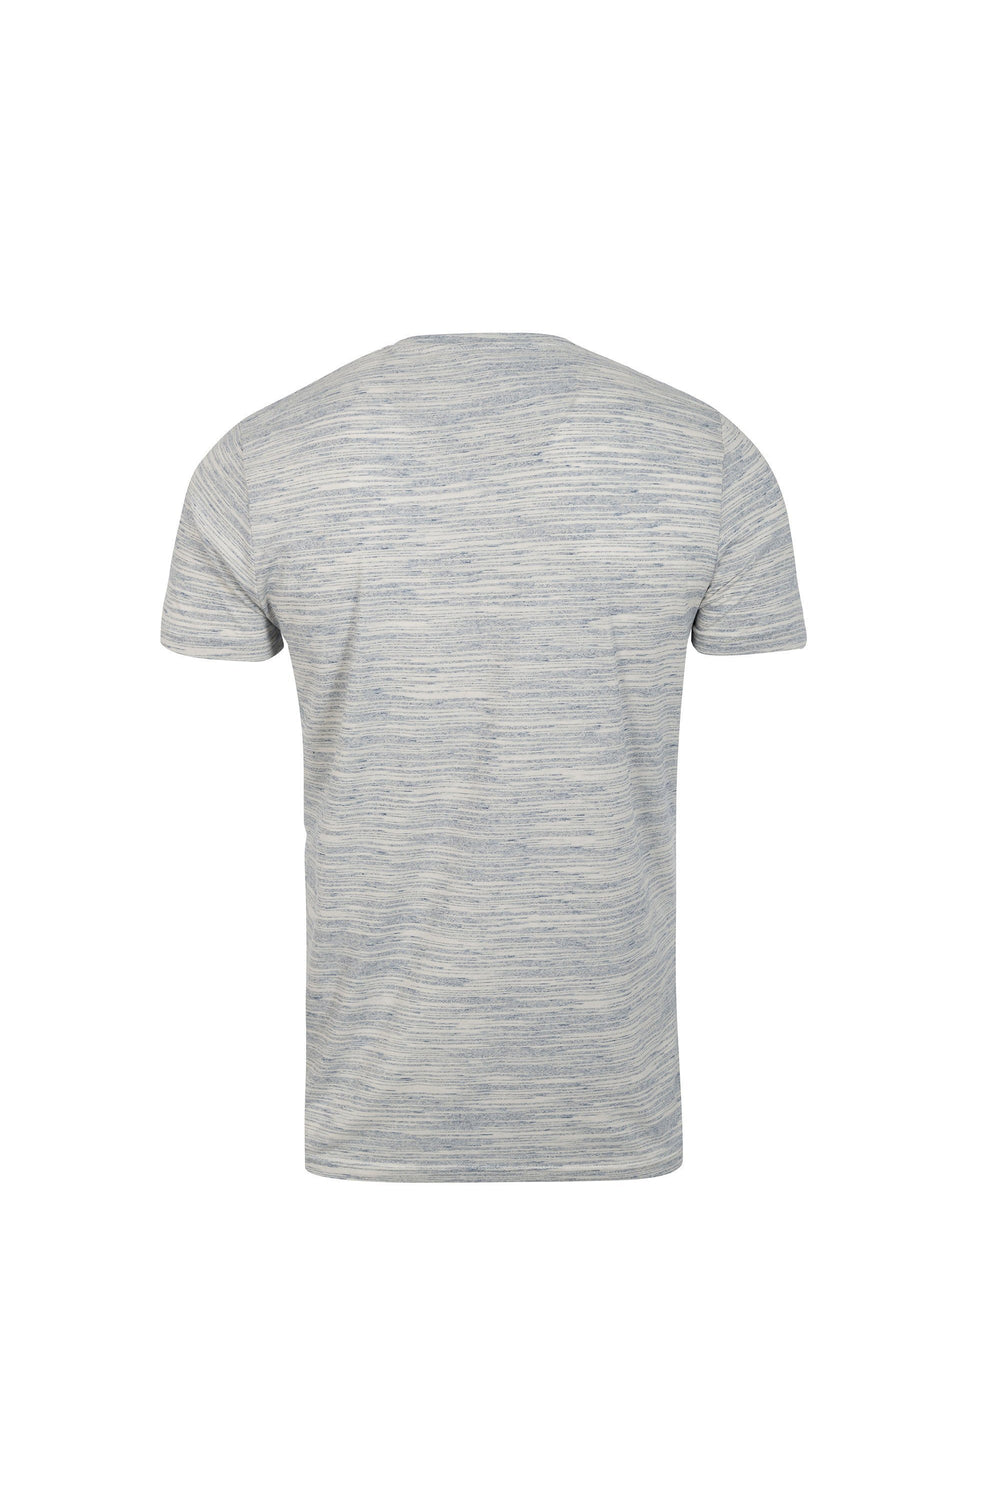 T-Shirts - Slub Grandad T-Shirt Dusty Blue